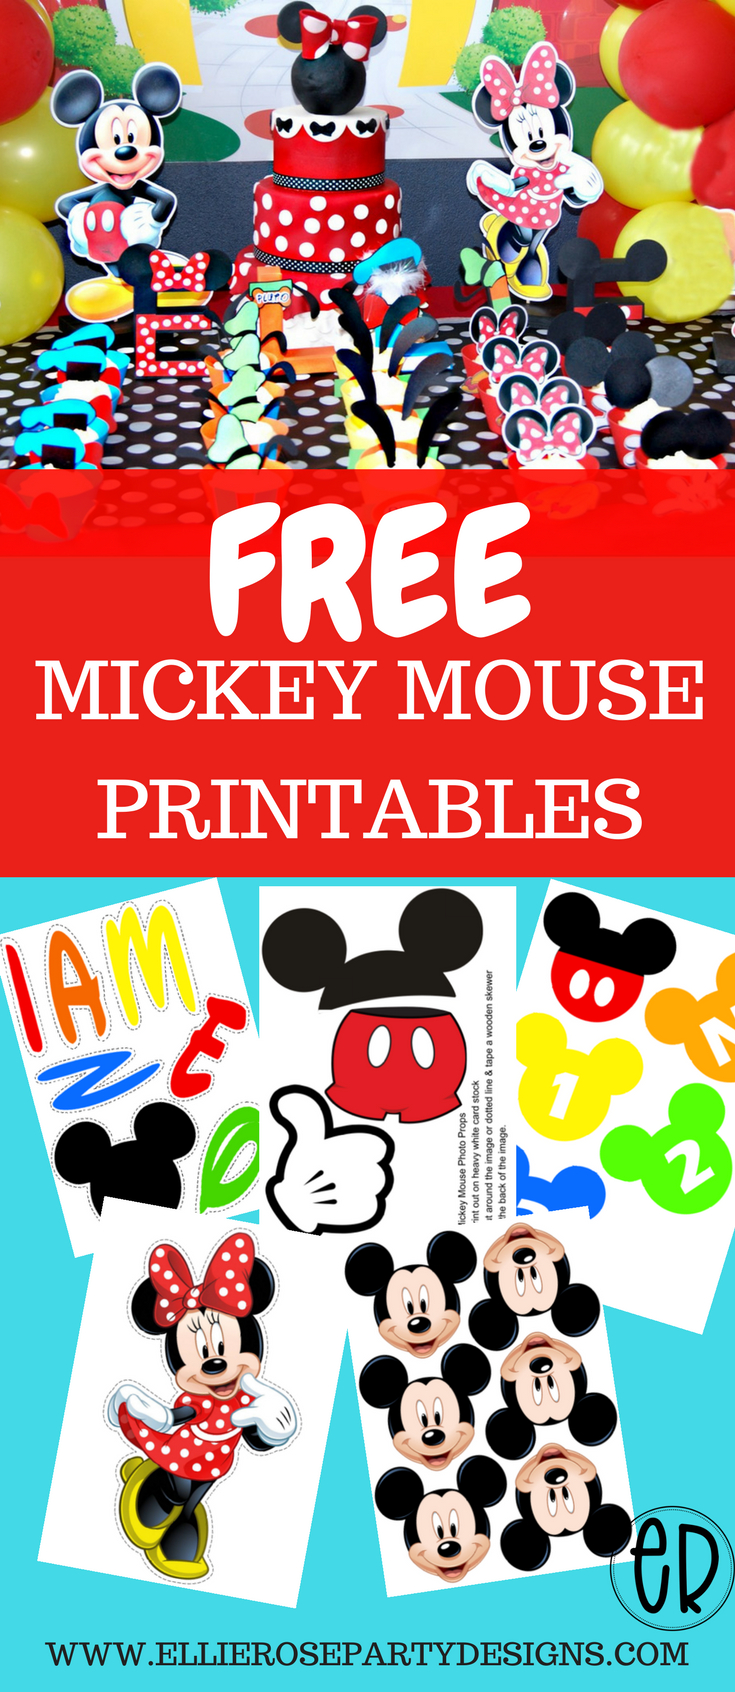 Free Mickey Mouse Printables And Party Ideas. Diy Decorations For - Mickey Mouse Clubhouse Free Party Printables